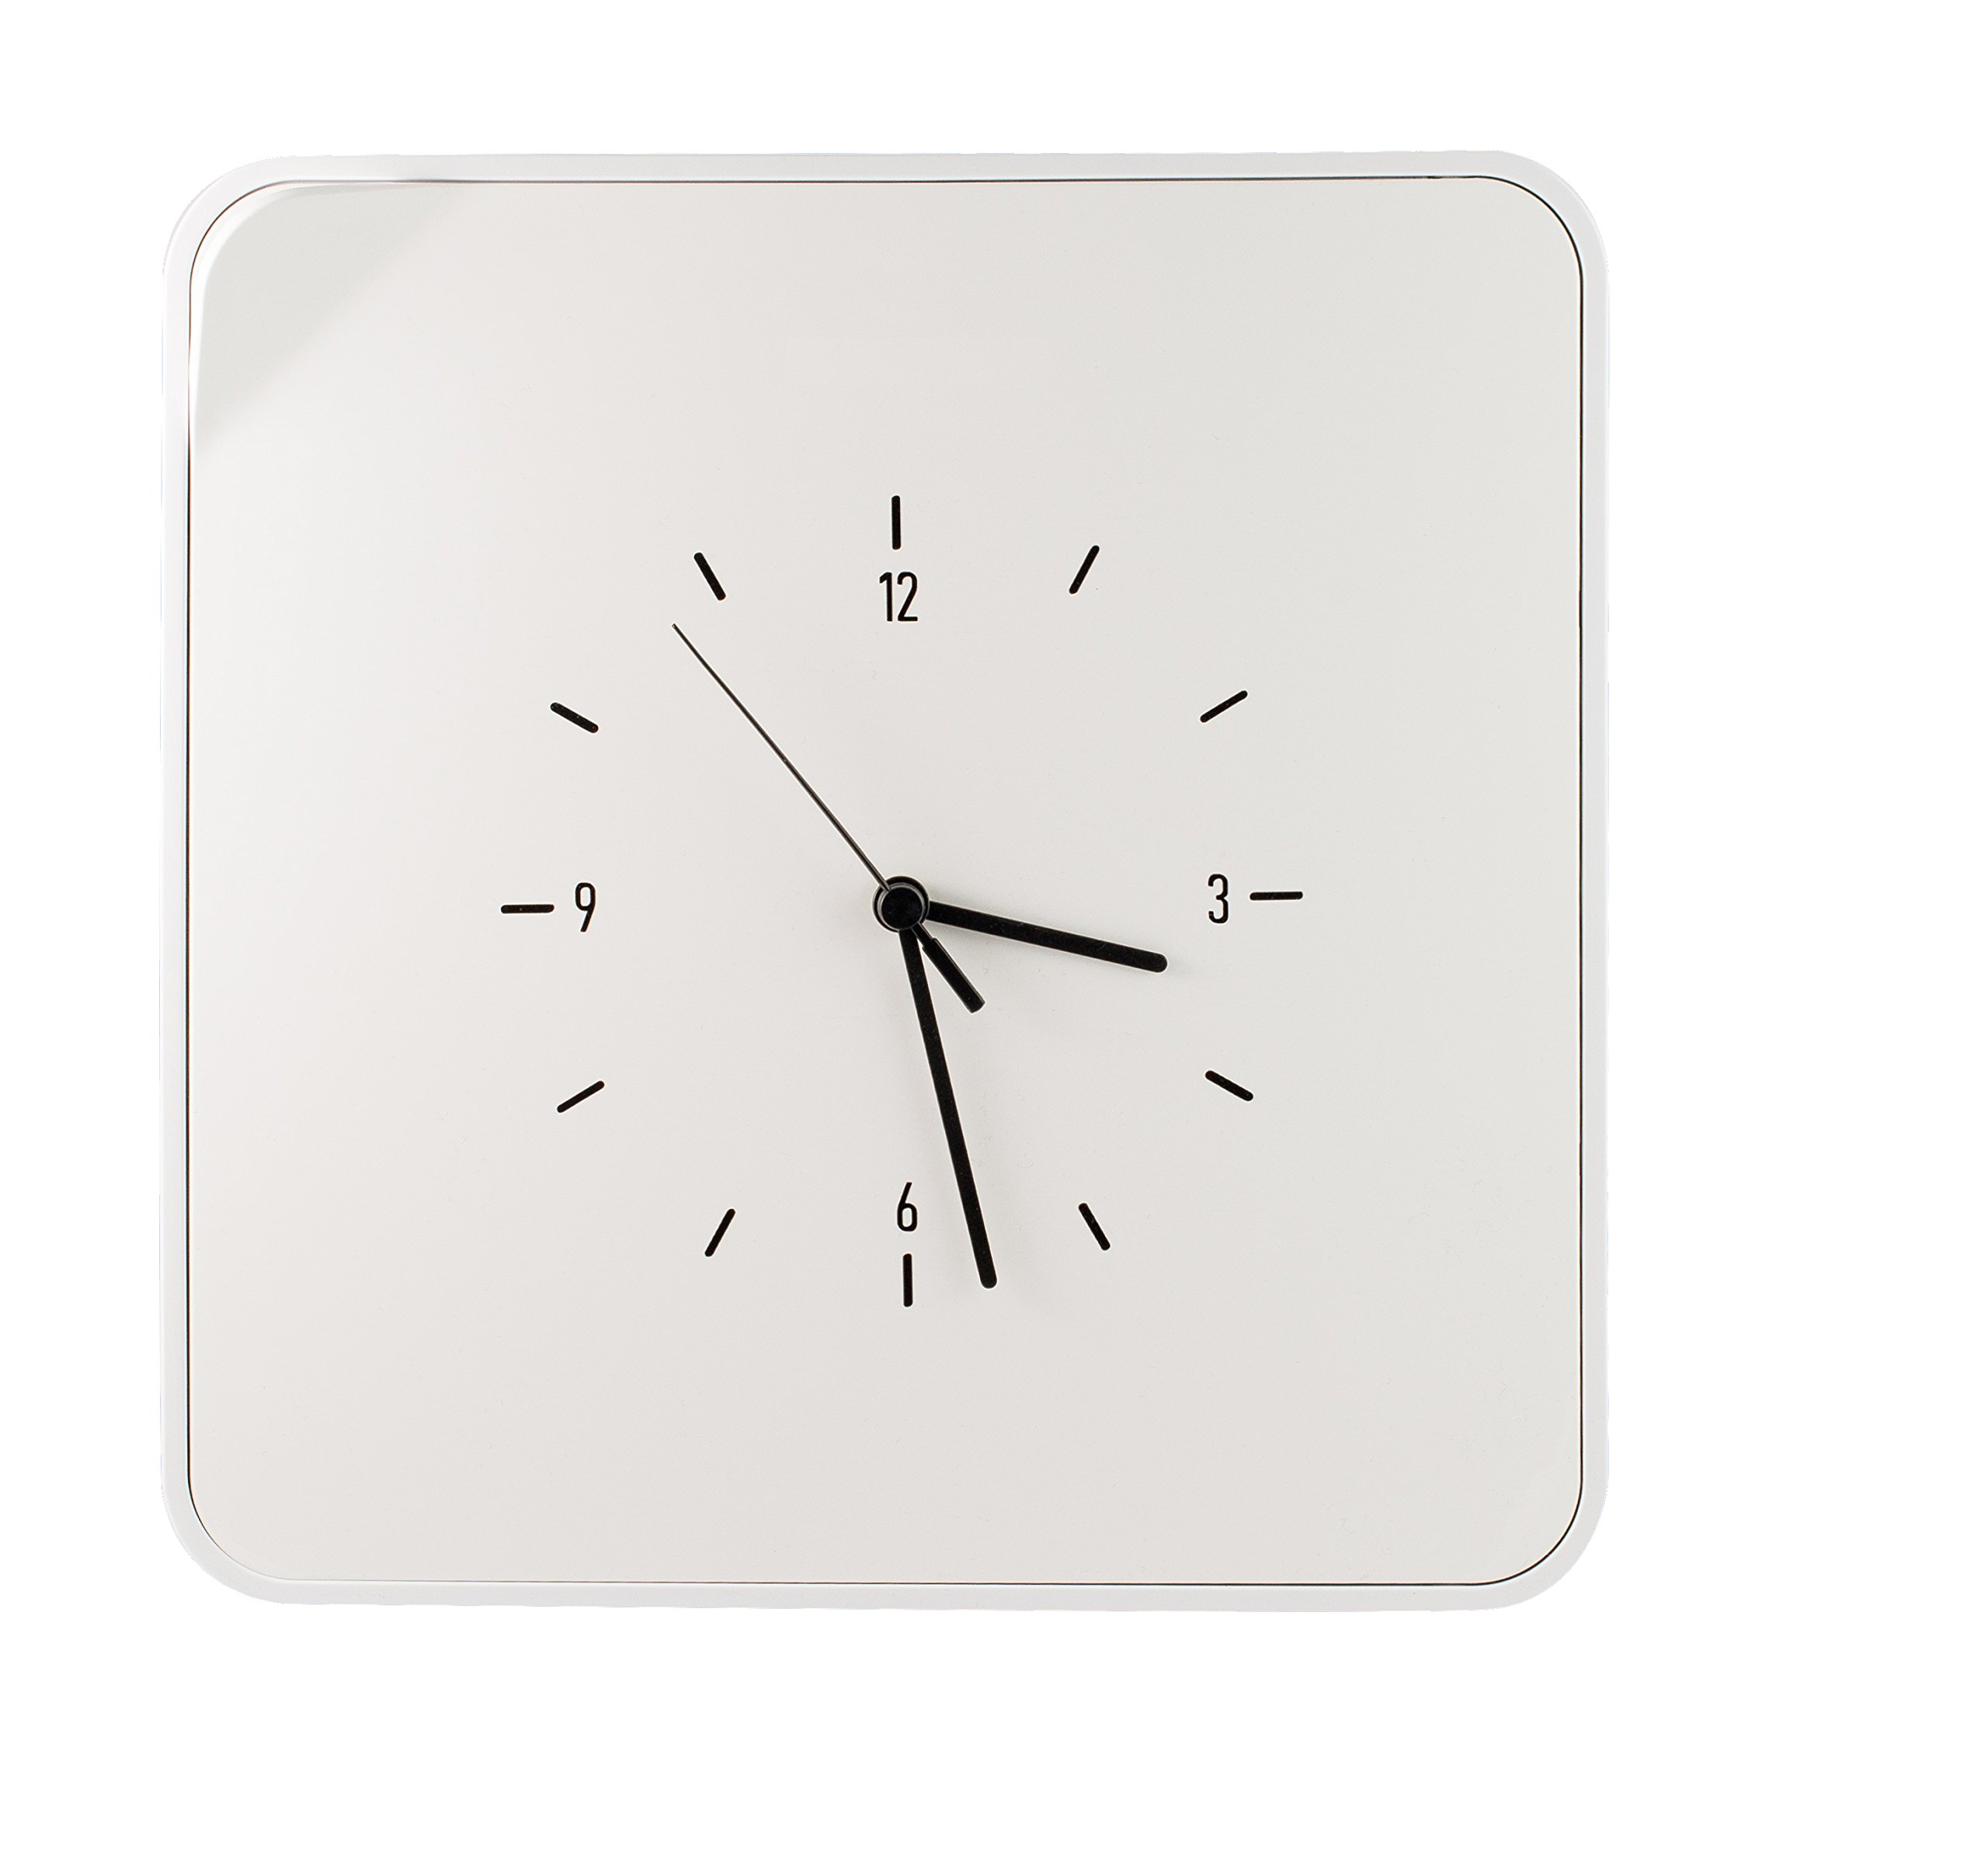 Paperflow MultiBox 12-Key Holder with Clock, 12.6 x 12.6 x 2.4 Inches, White (MTBKHC.13) by Paperflow